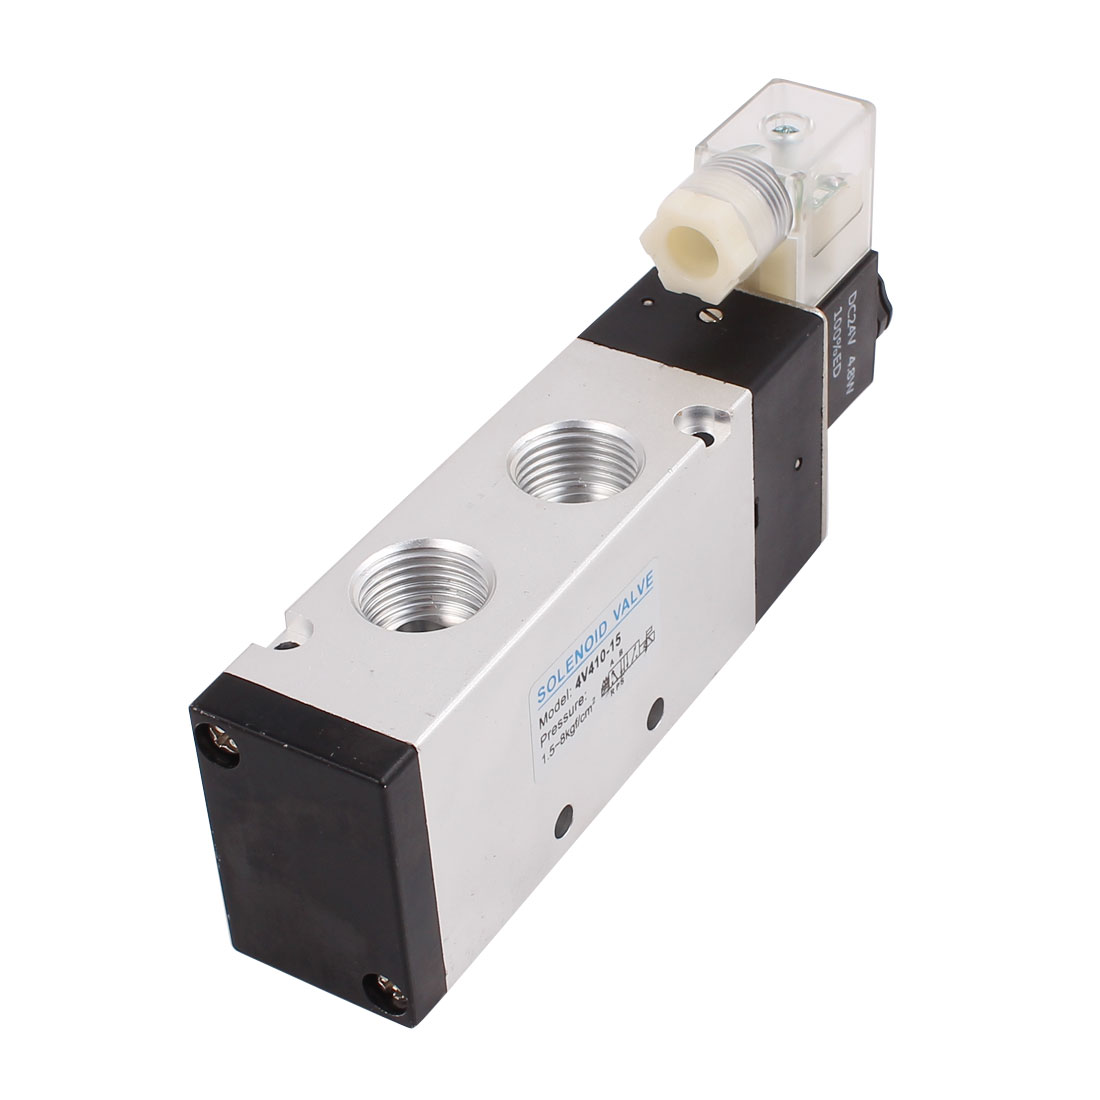 DC 24V 2 Position 5 Way Neutral Electric Pneumatic Solenoid Valve 4V410-15